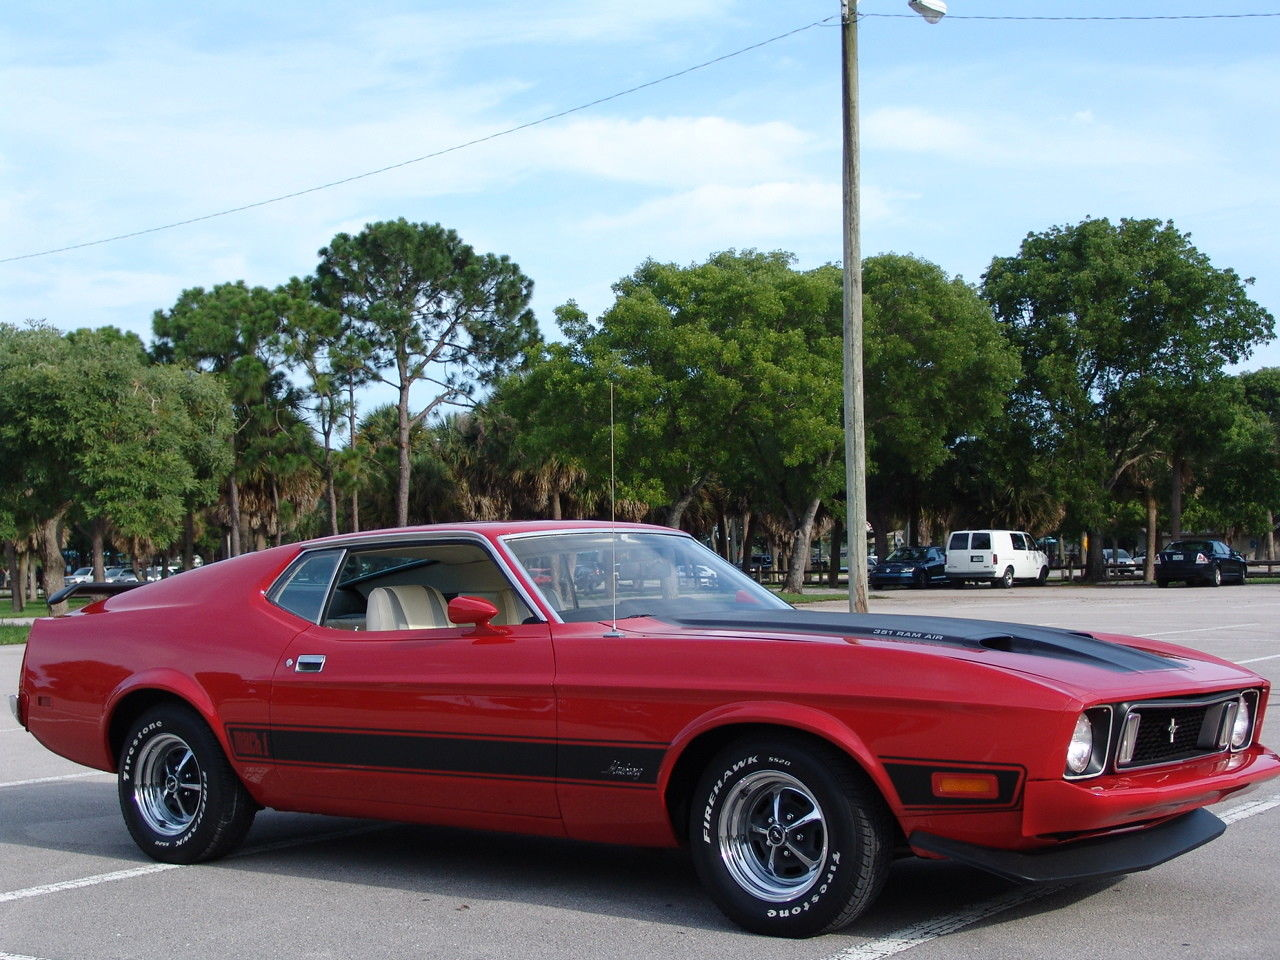 Awesome 1969 ford mustang mach 1 fastback 1969 ford mustang mach 1 fastback 390 s code big block shelby 1967 gt500 mach1 2019